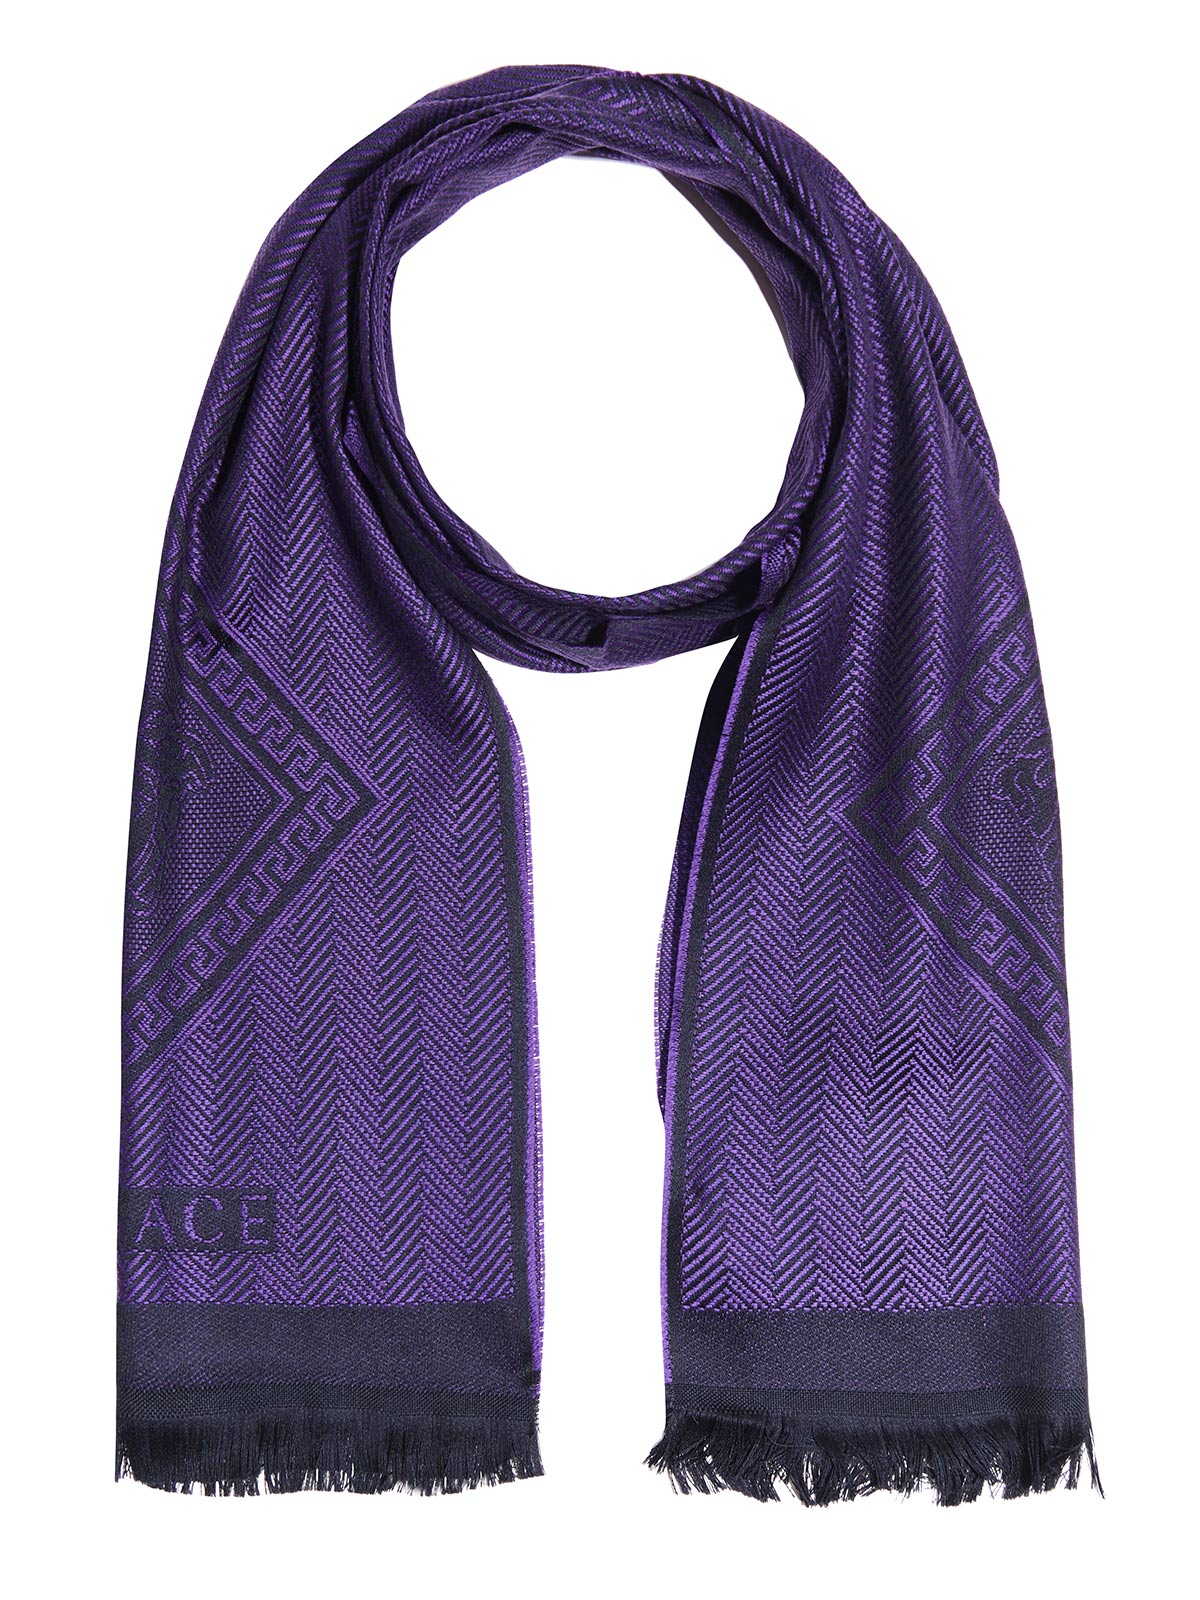 versace-scarf,-180x36cm,-purple by versace